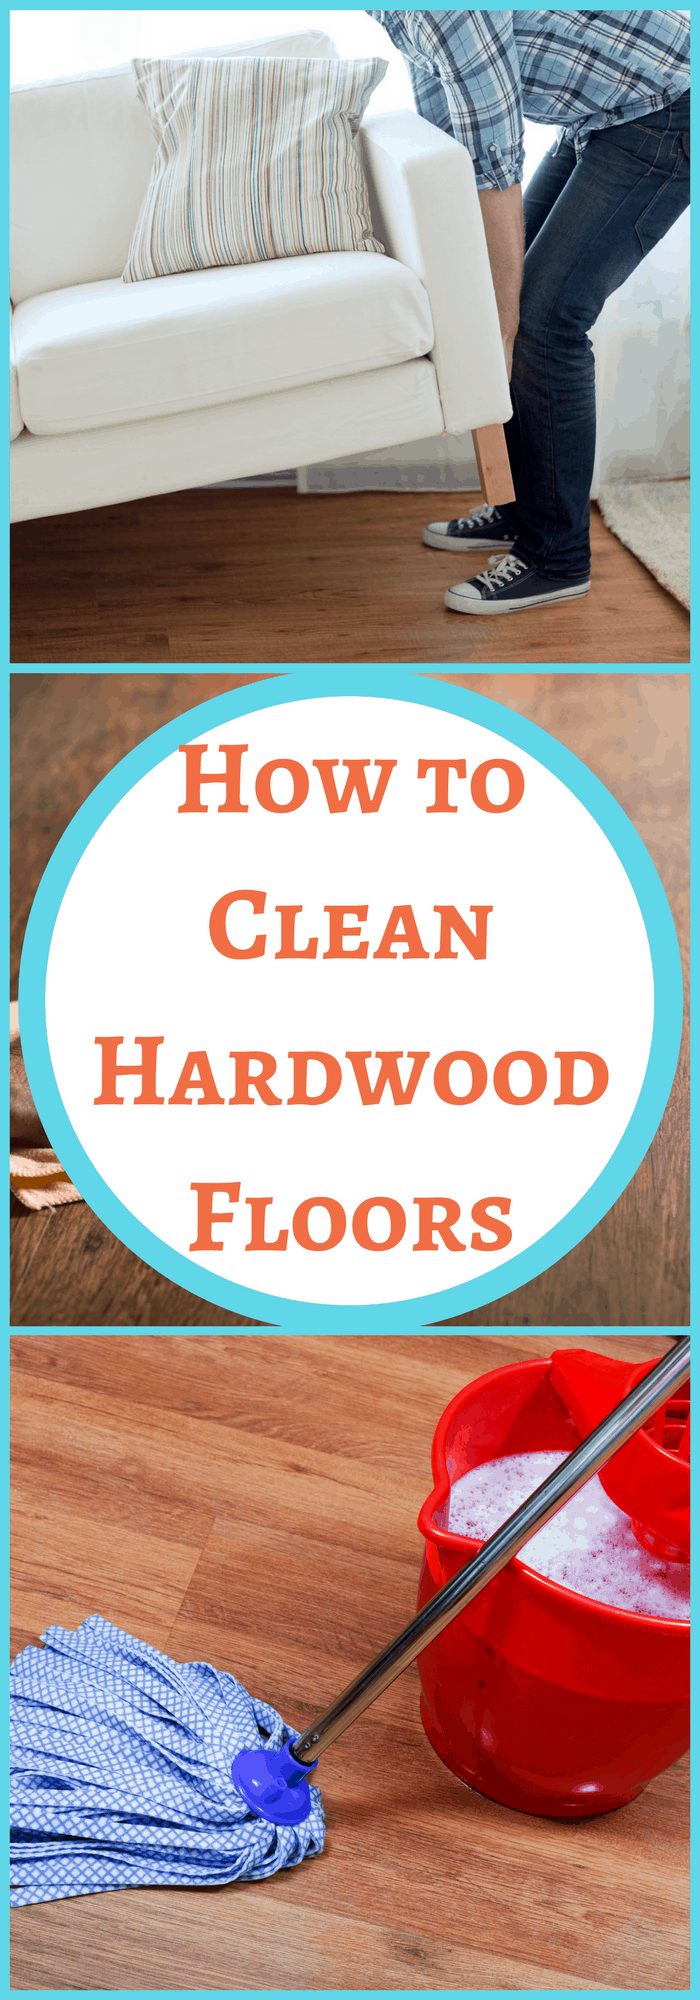 Cleaning-How to Clean Hardwood Floors-The Organized Mom